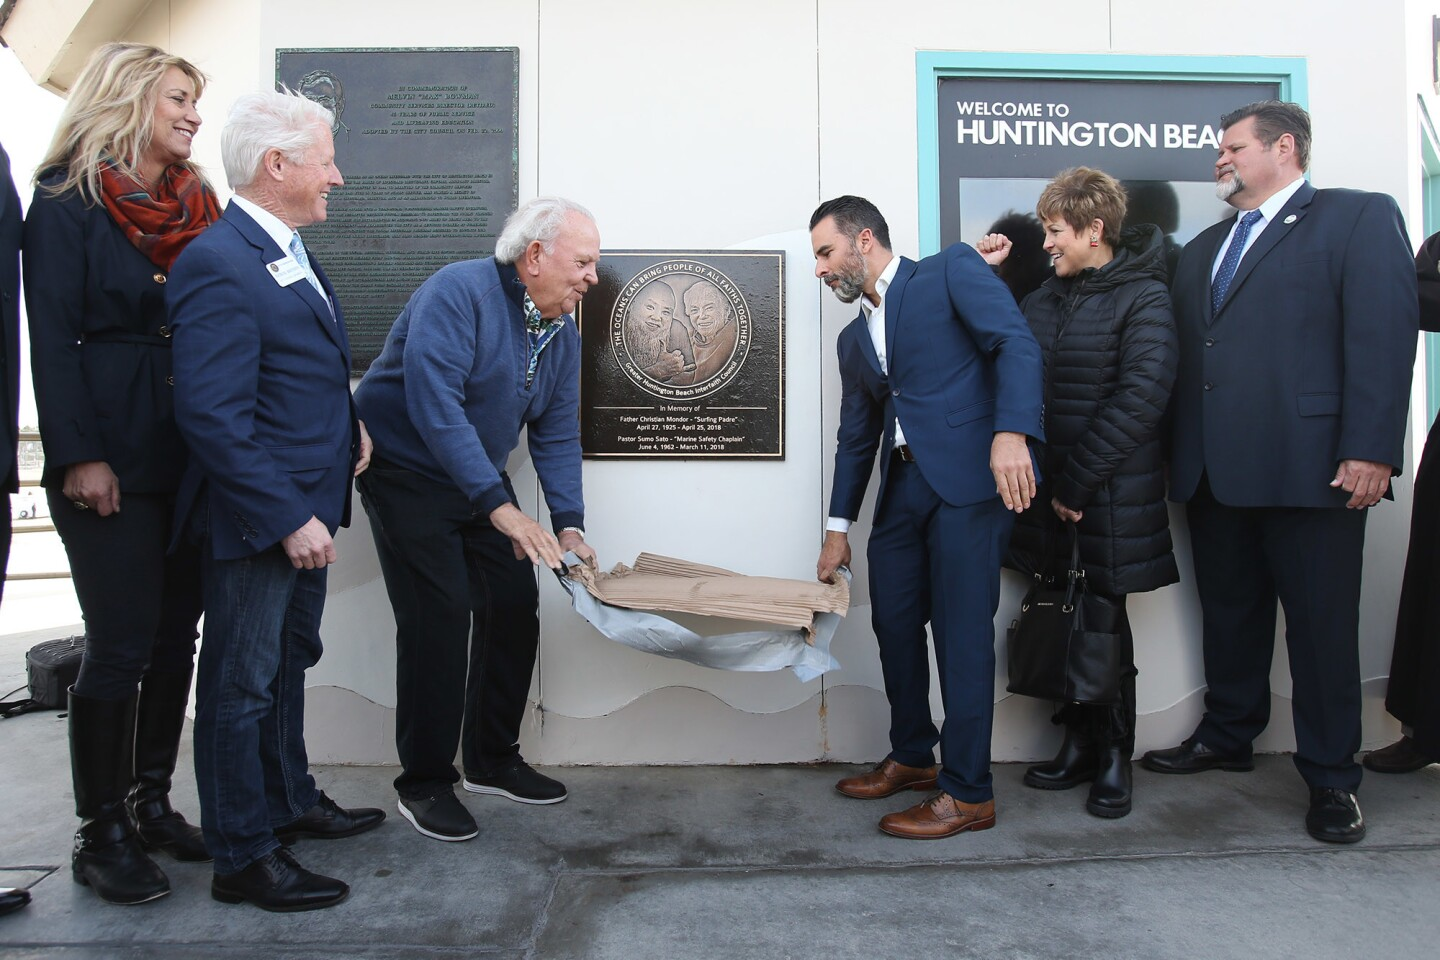 la-plaque-dedication-and-unveiling-ceremony-fo-005